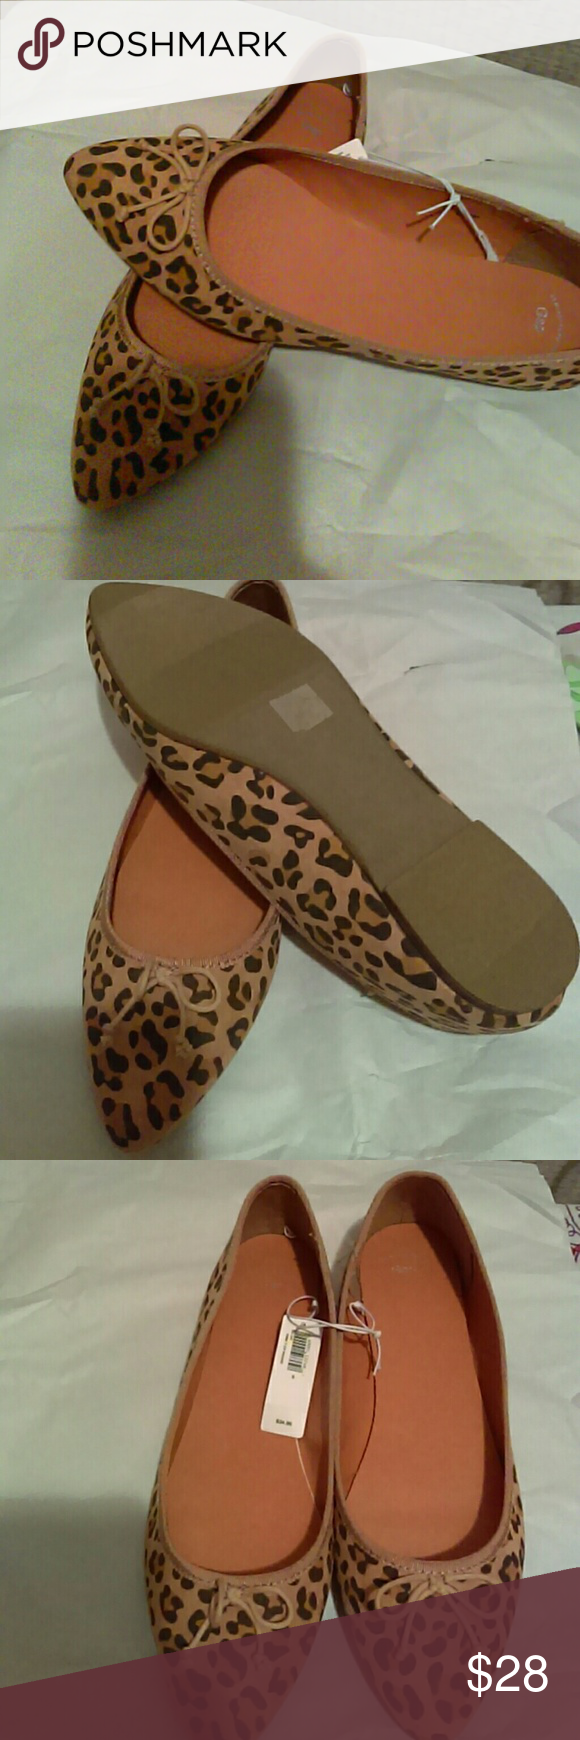 Ladies Gap Leopard Flats Size 9 leopard flats from the gap. Brand new still with tags on. Pet free / smoke free home they come from. GAP Shoes Flats & Loafers